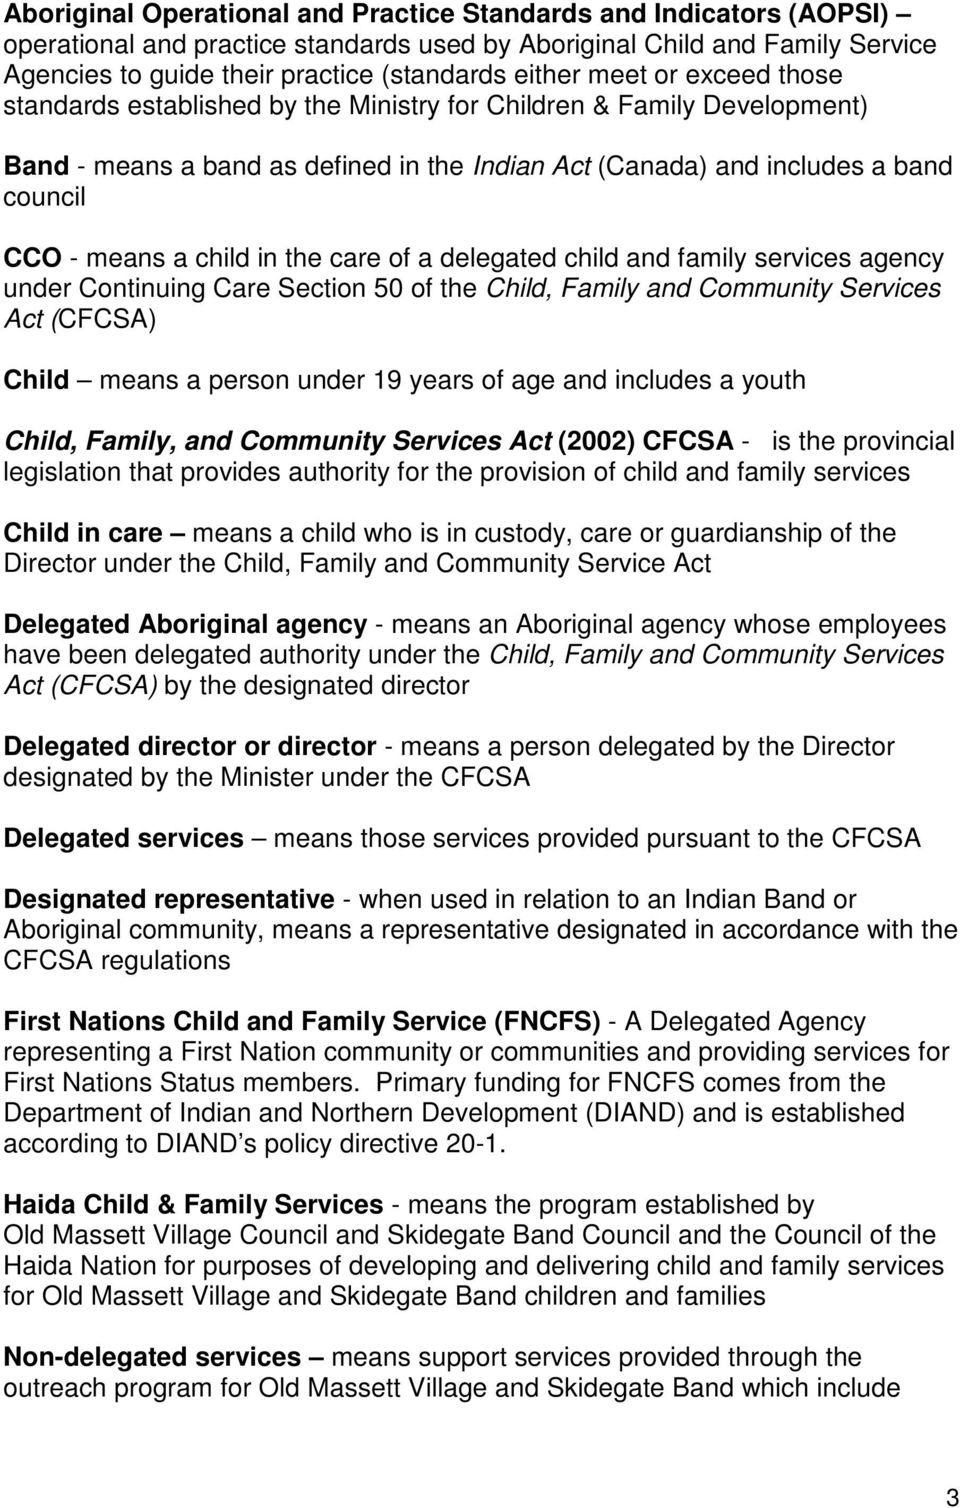 in the care of a delegated child and family services agency under Continuing Care Section 50 of the Child, Family and Community Services Act (CFCSA) Child means a person under 19 years of age and